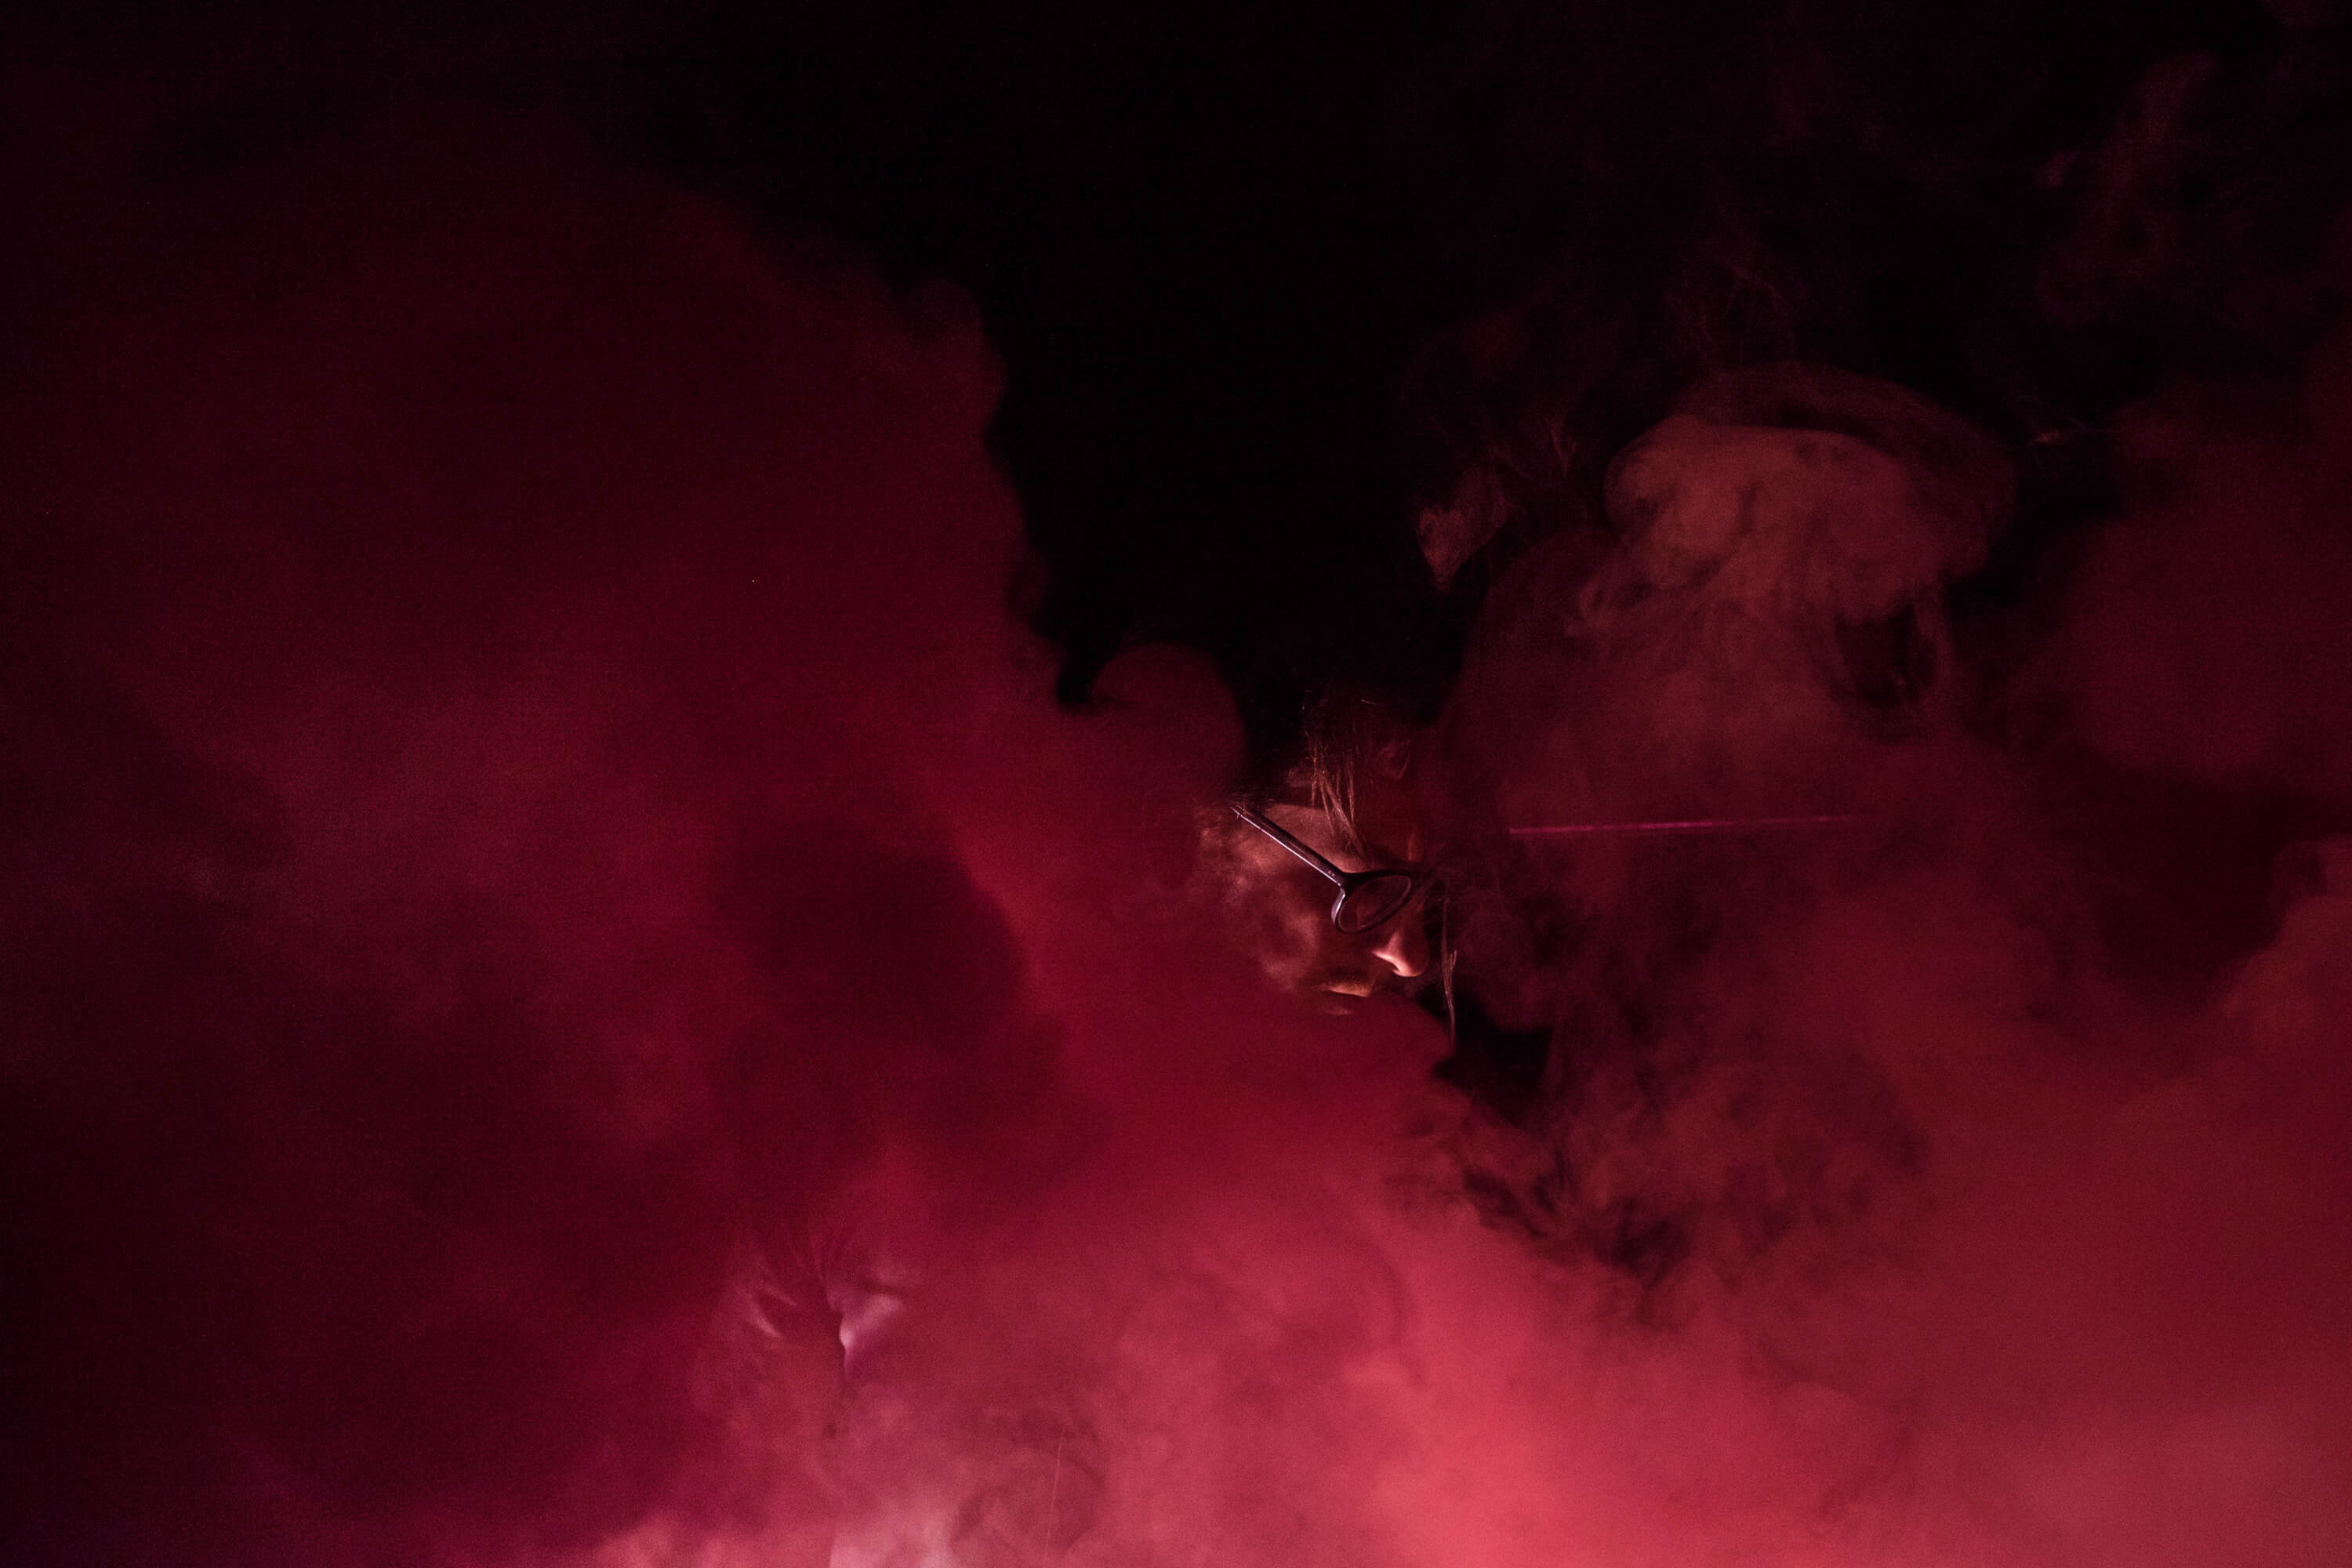 Producer, composer and musician Nicolas Bernier standing in red smoke with glasses.